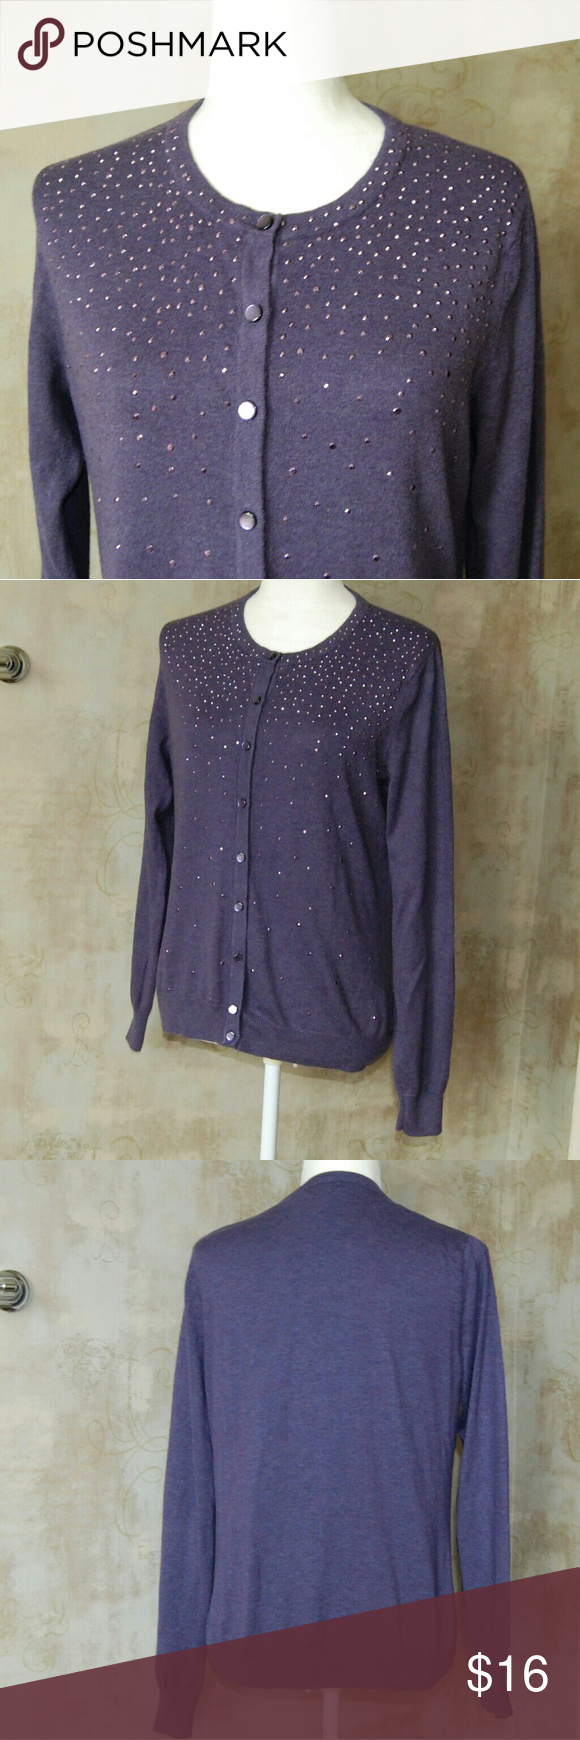 Merona purple cardigan sweater with rhinestones A soft purple ...